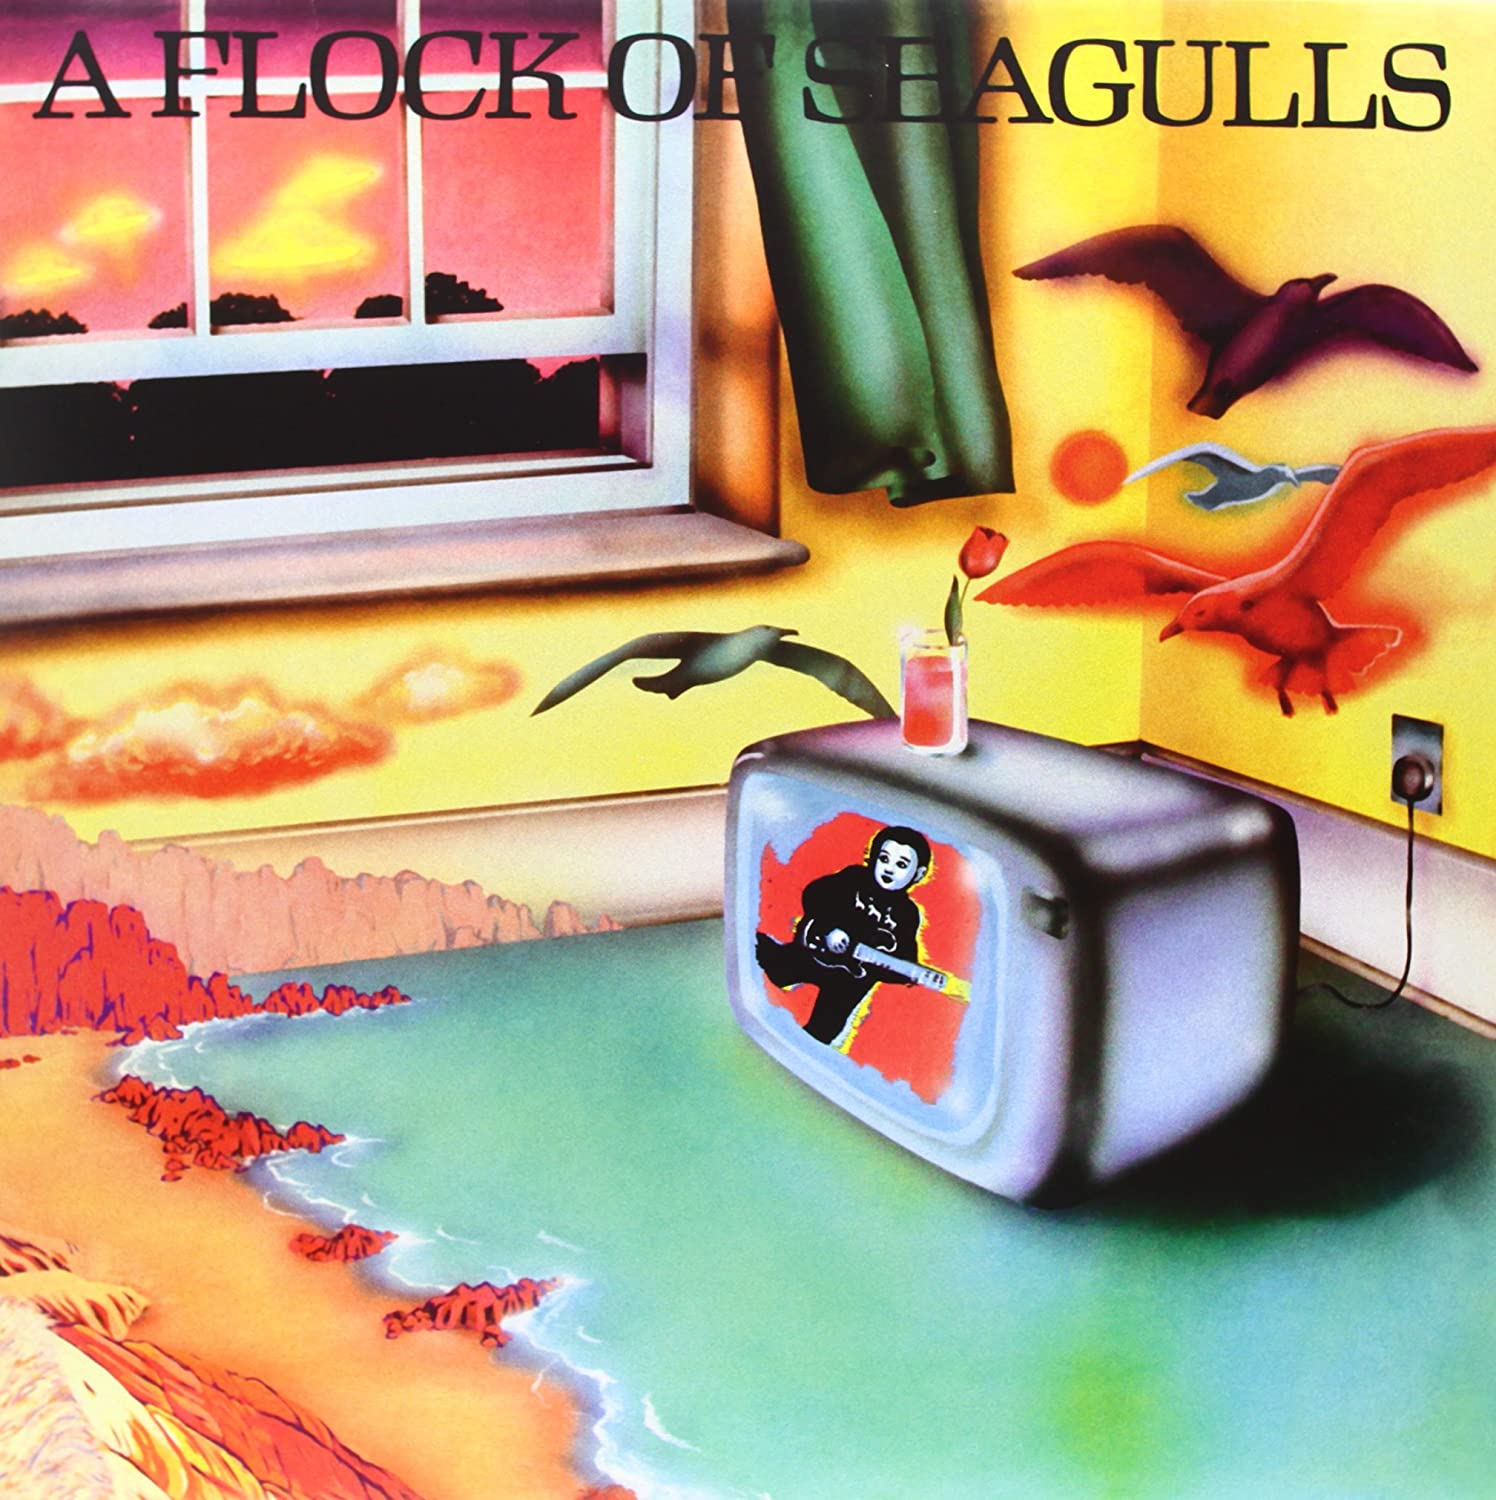 Flock of Seagulls [12 inch Analog]                                                                                                                                                                                                                                                    <span class=